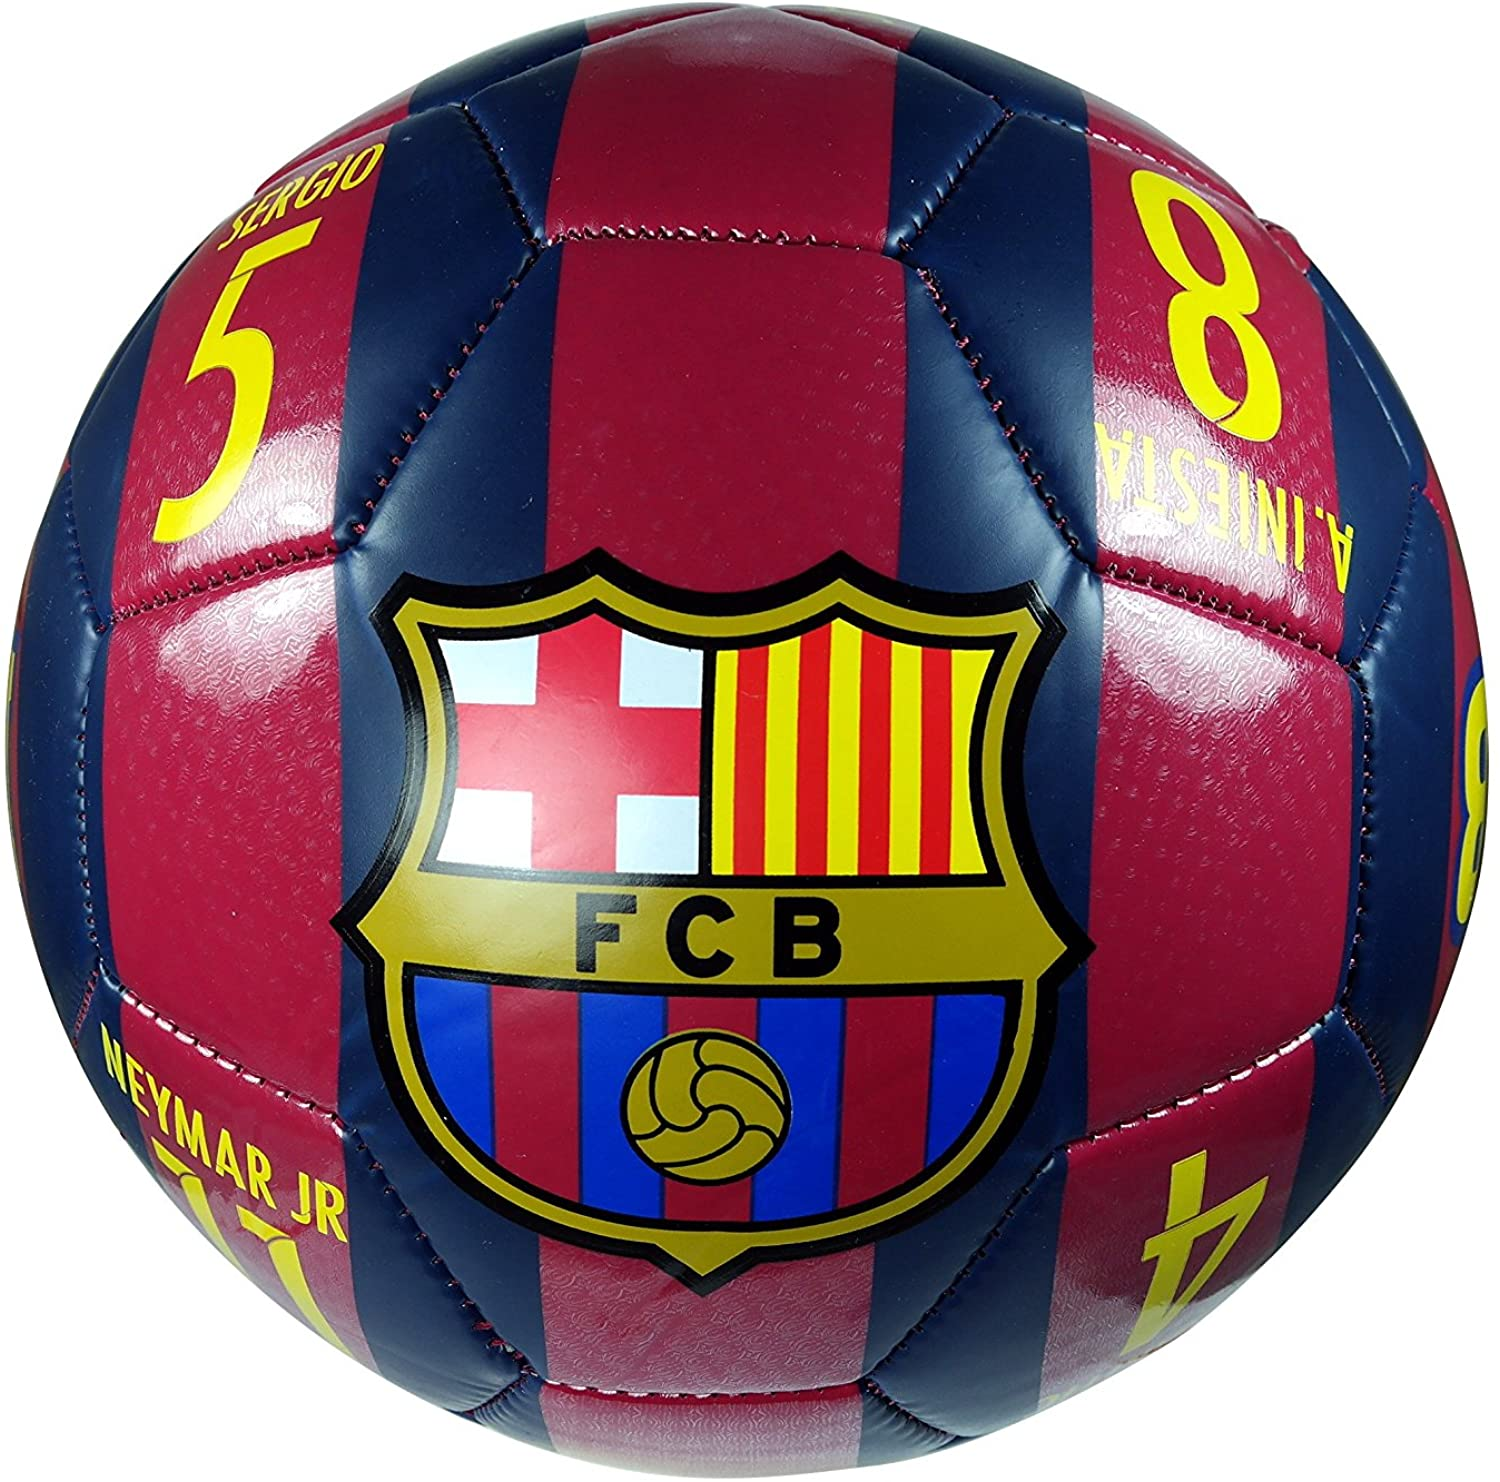 FC Barcelona Authentic Official Licensed Soccer Ball Size 4-06-3